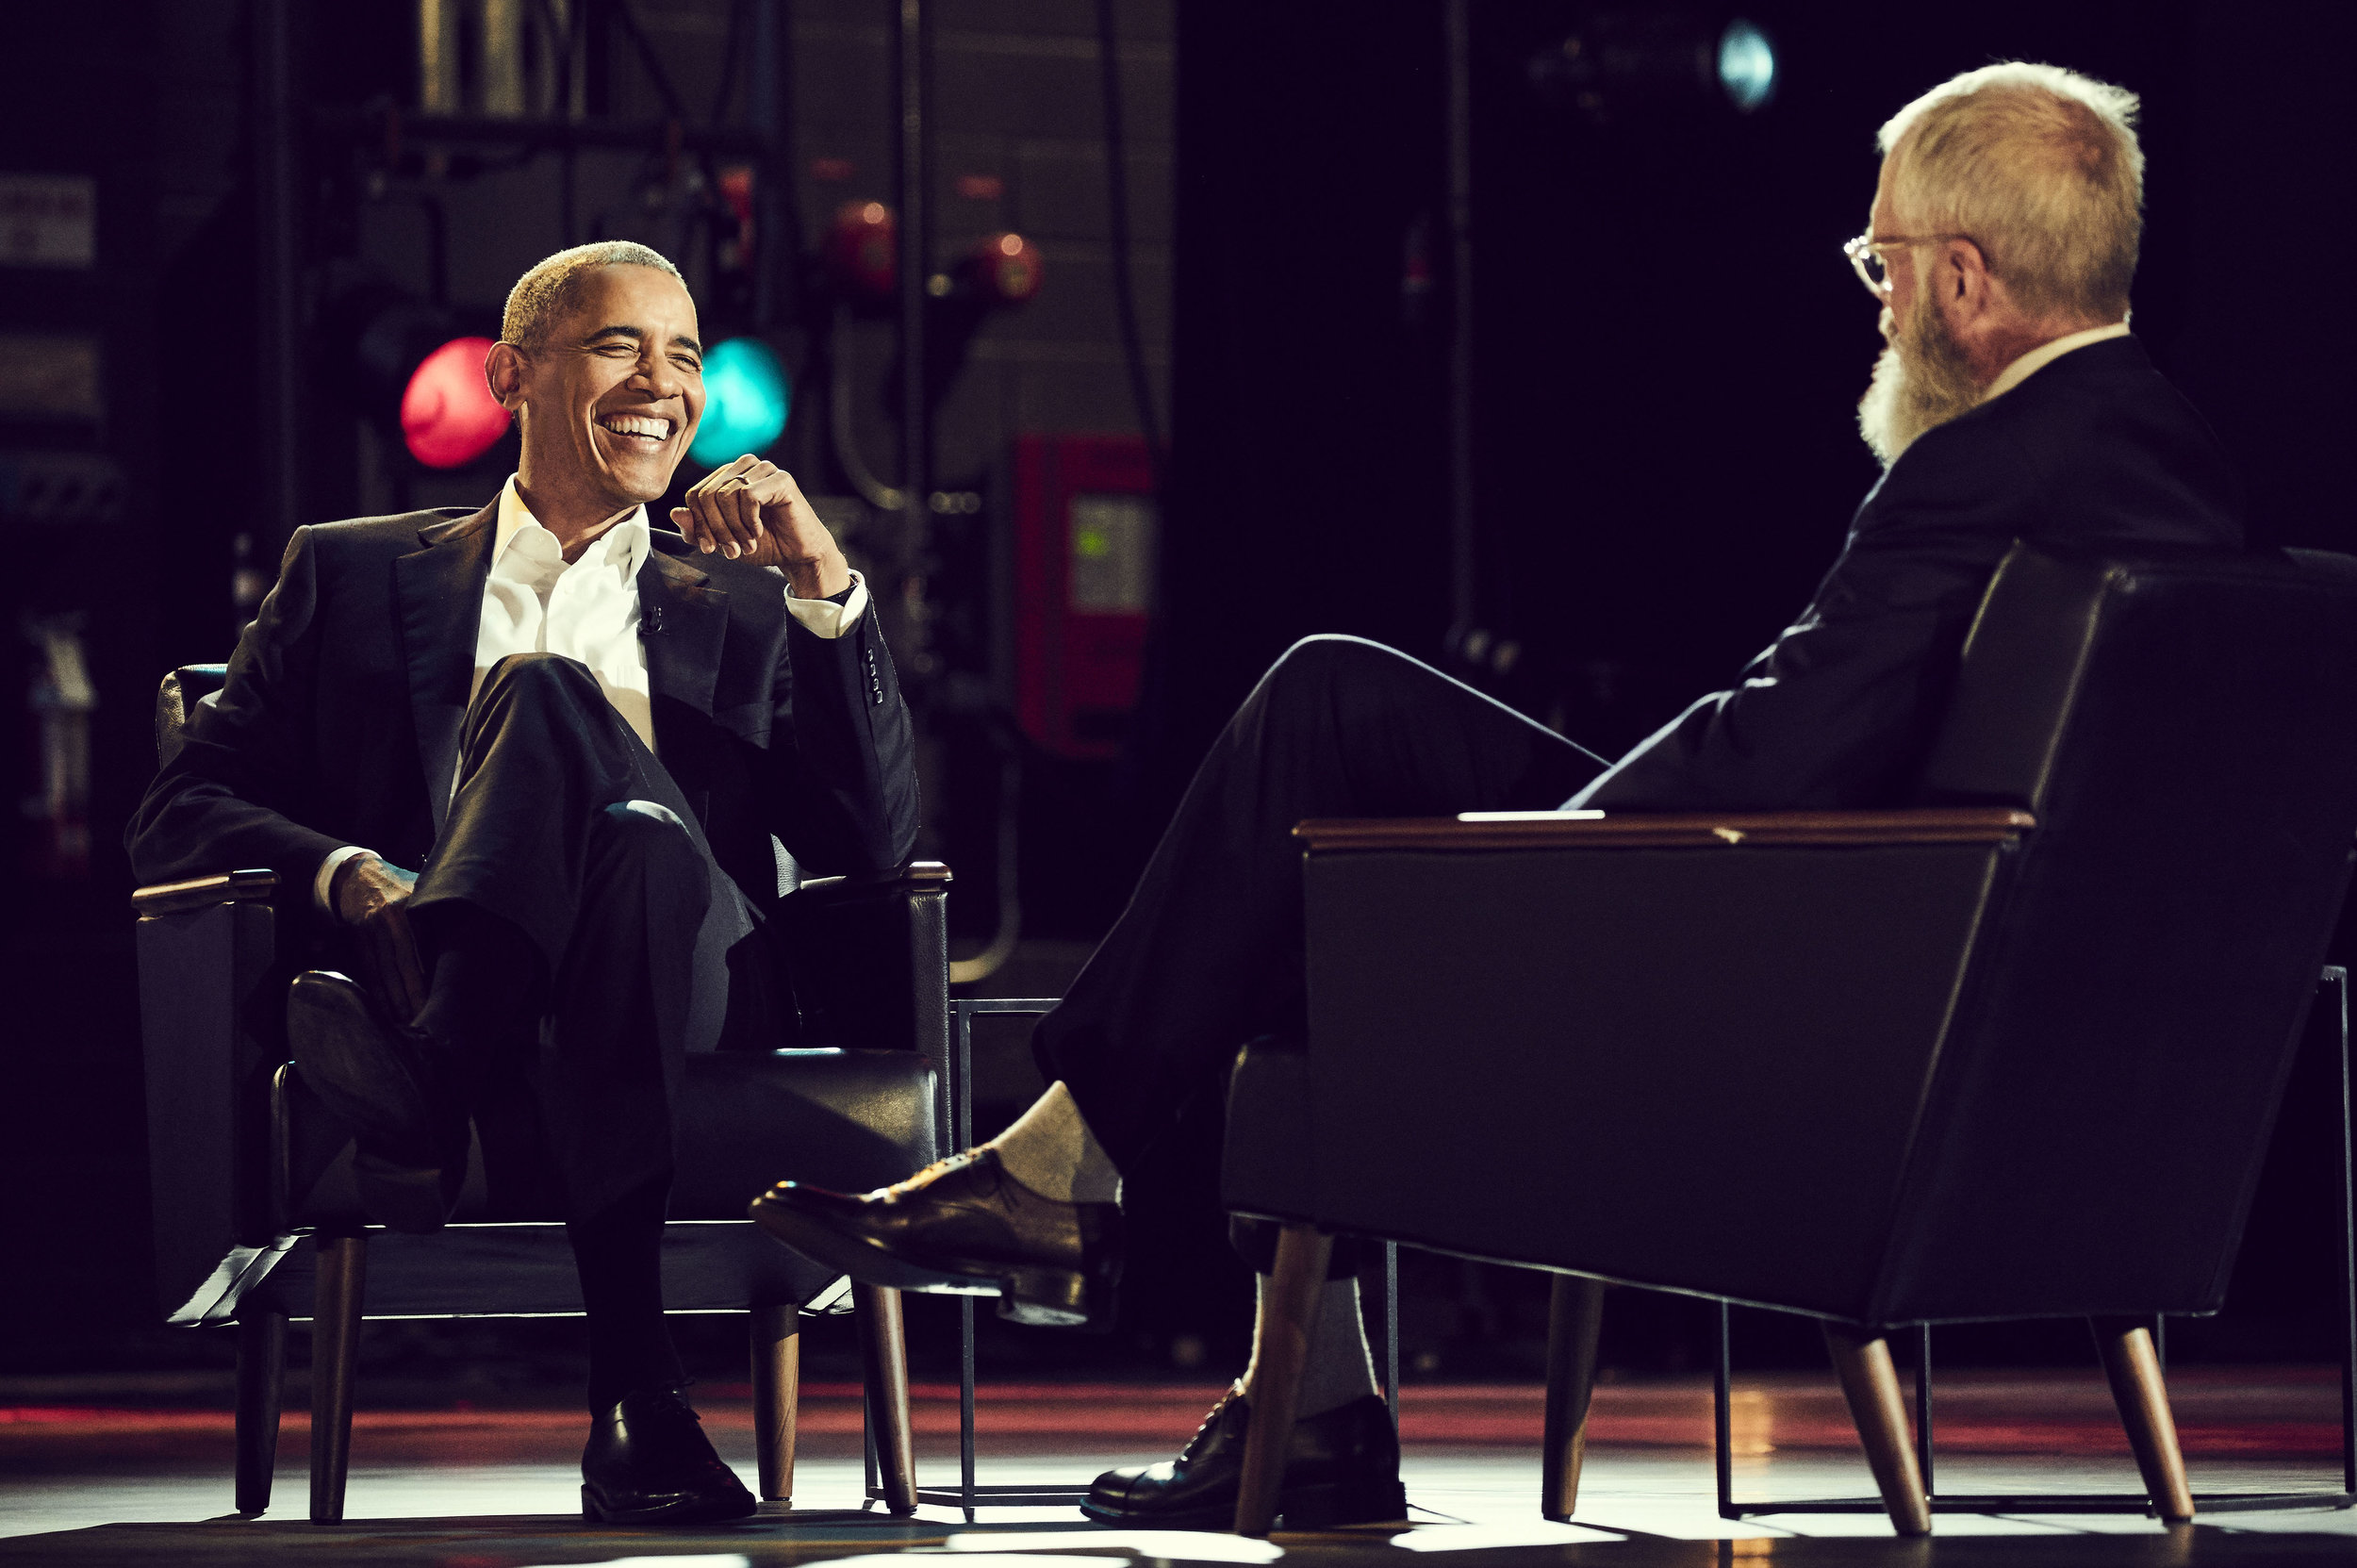 my-next-guest-needs-no-introduction-with-david-letterman-barack-obama.jpg